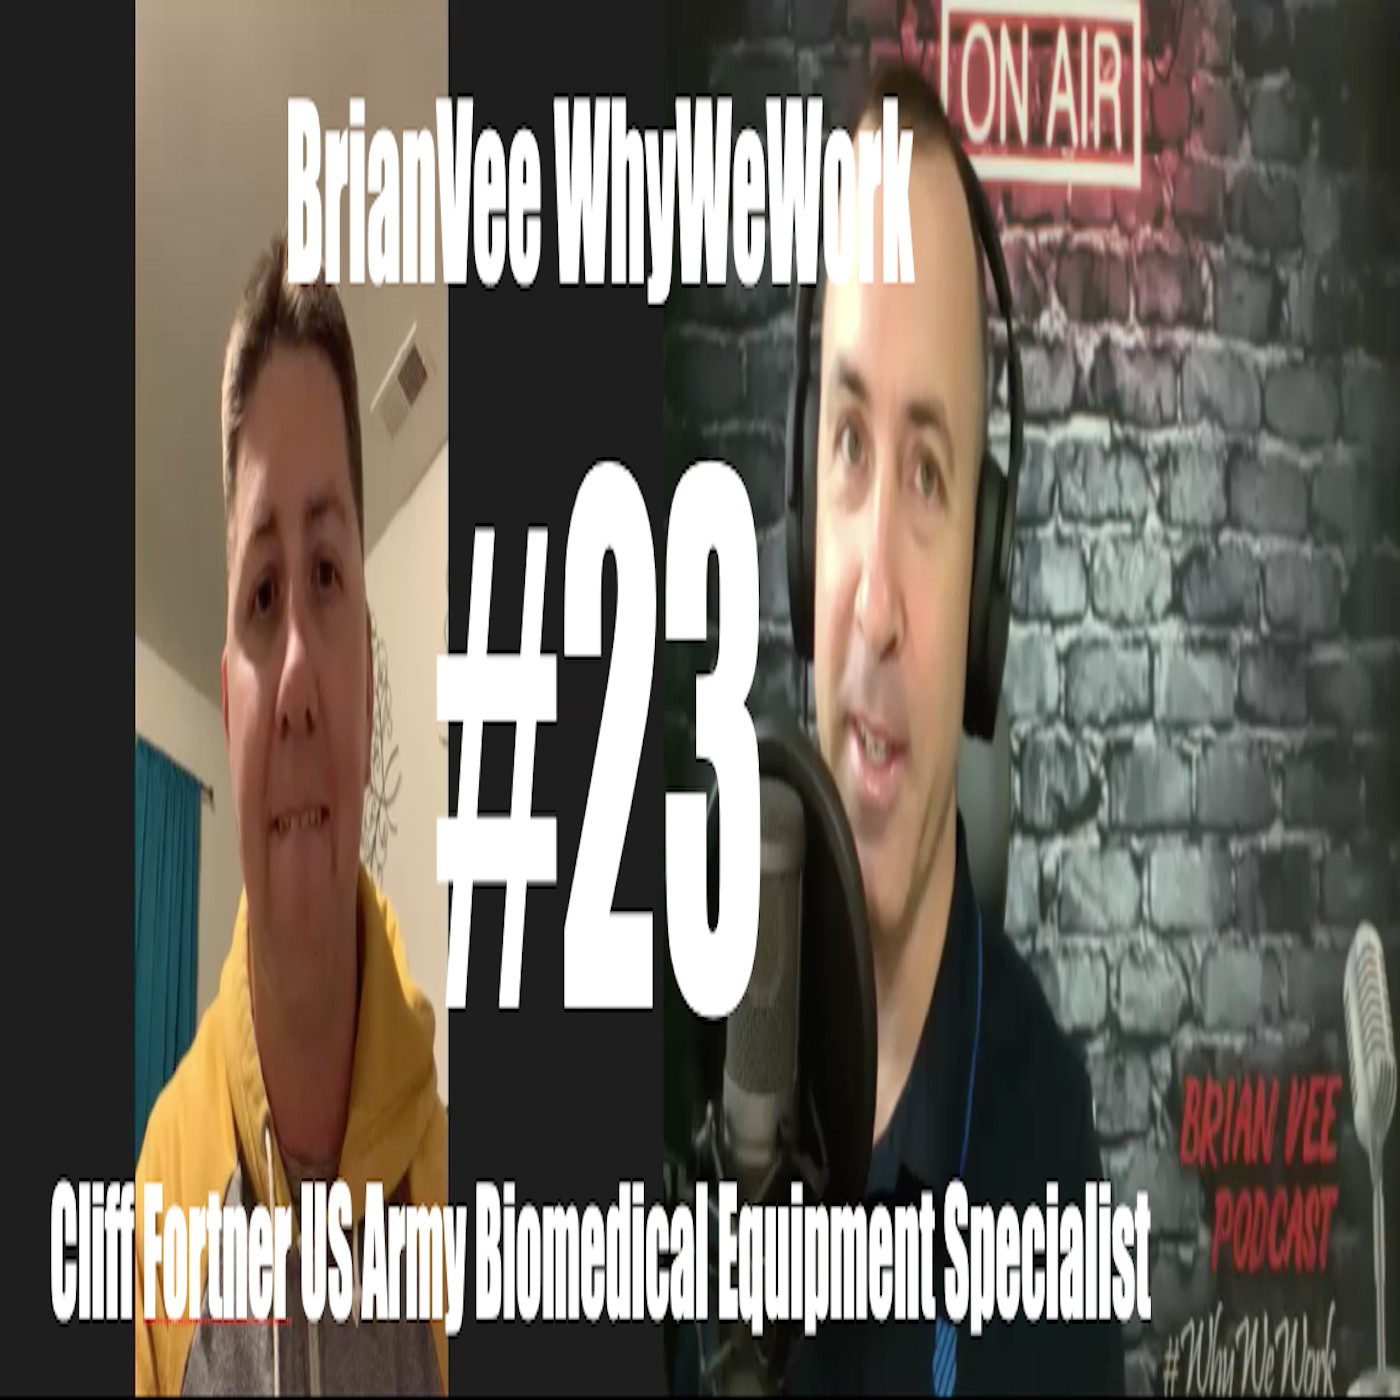 #23 Cliff Fortner US Army Biomedical Equipment Specialist BrianVee Whywework